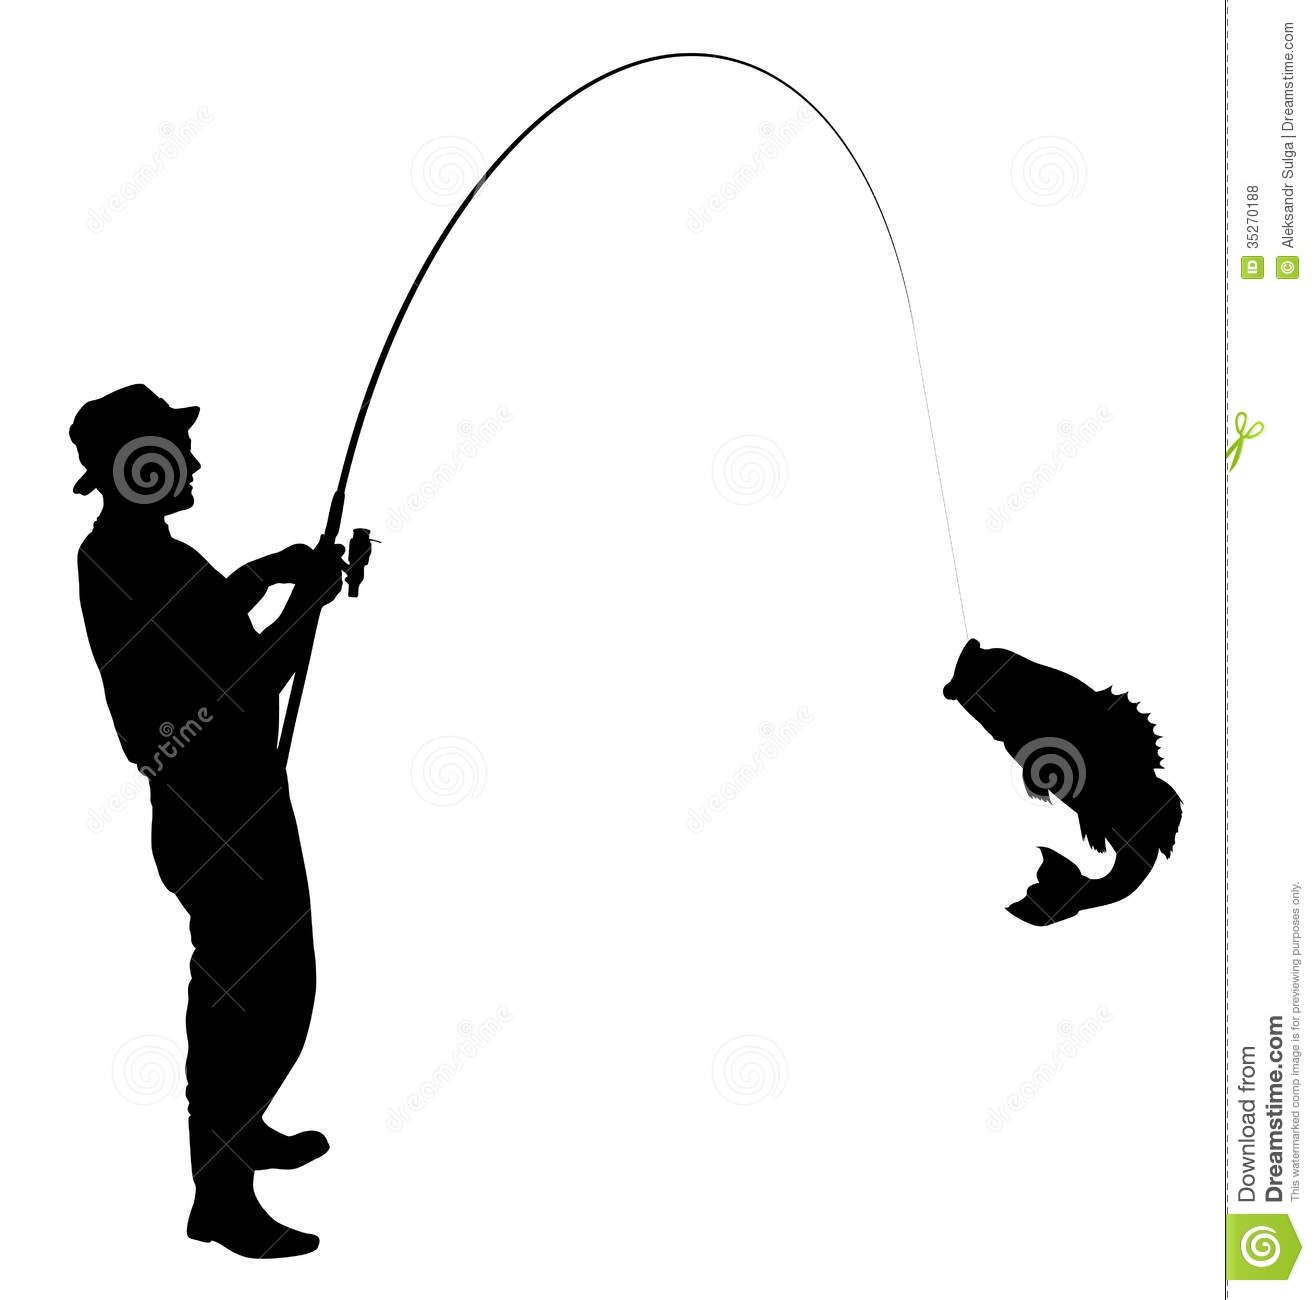 man fishing silhouette clipart panda free clipart images cakes